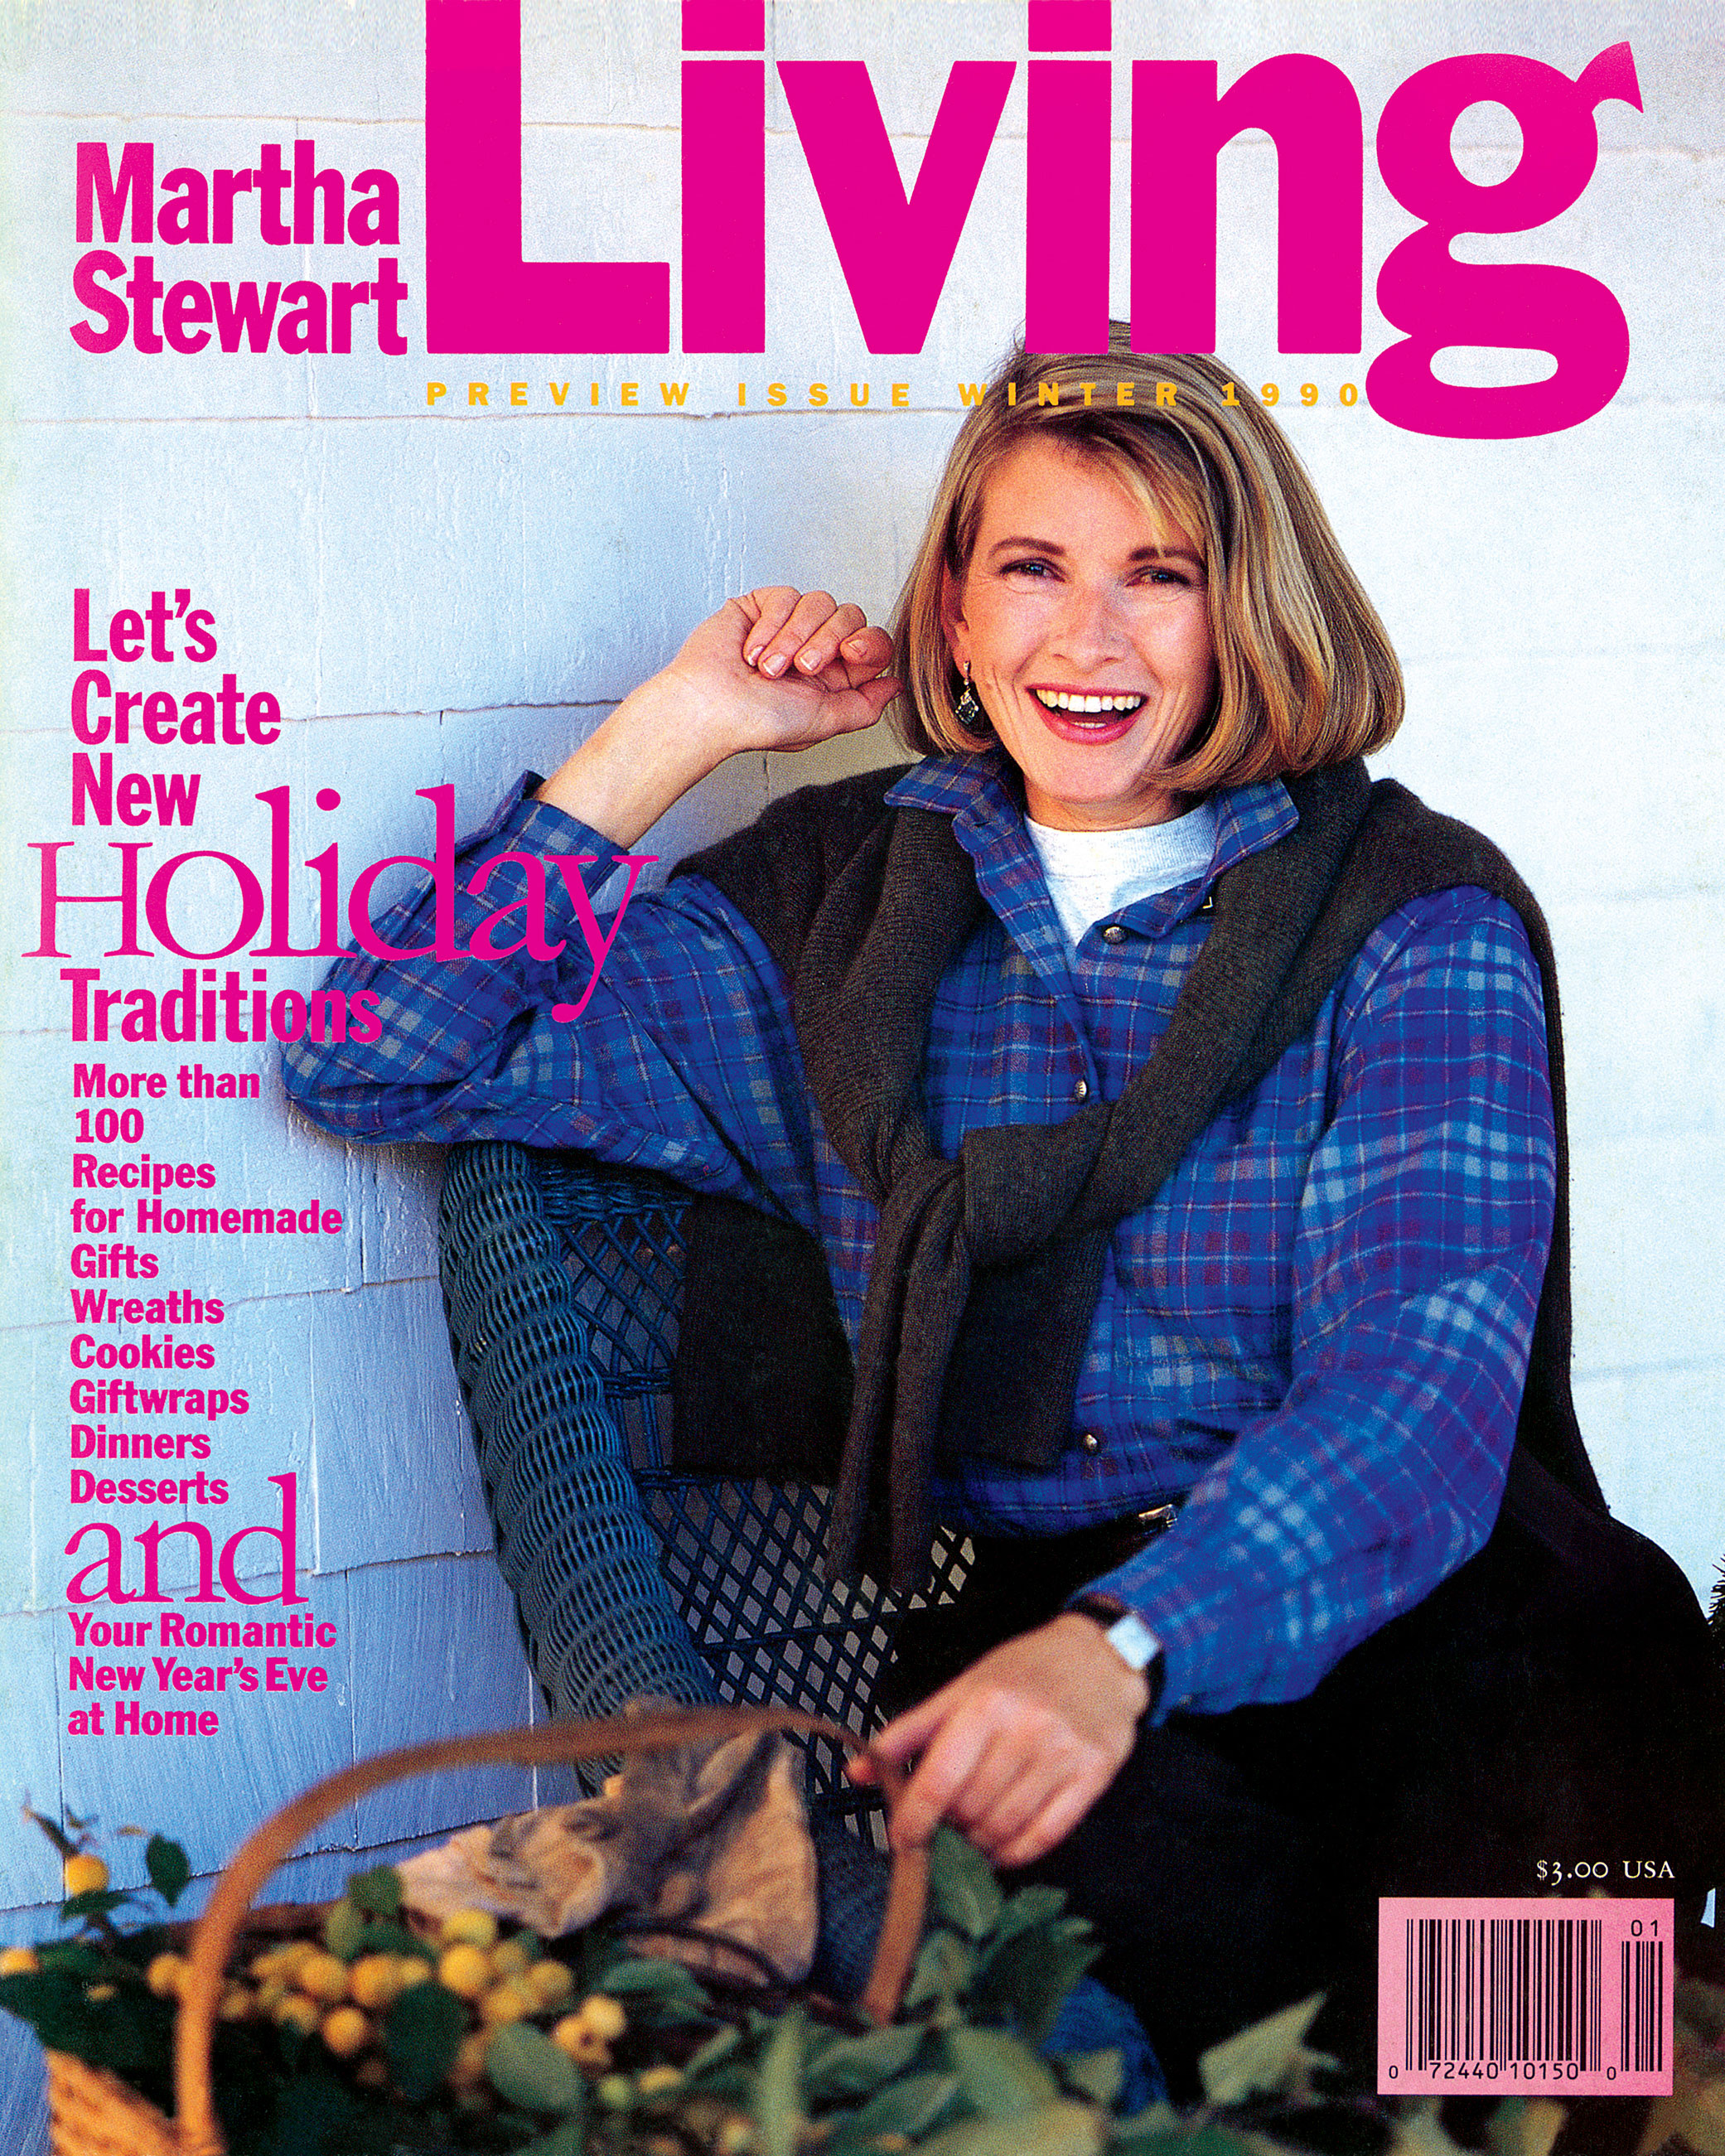 20 Years of Christmas with Martha Stewart Living